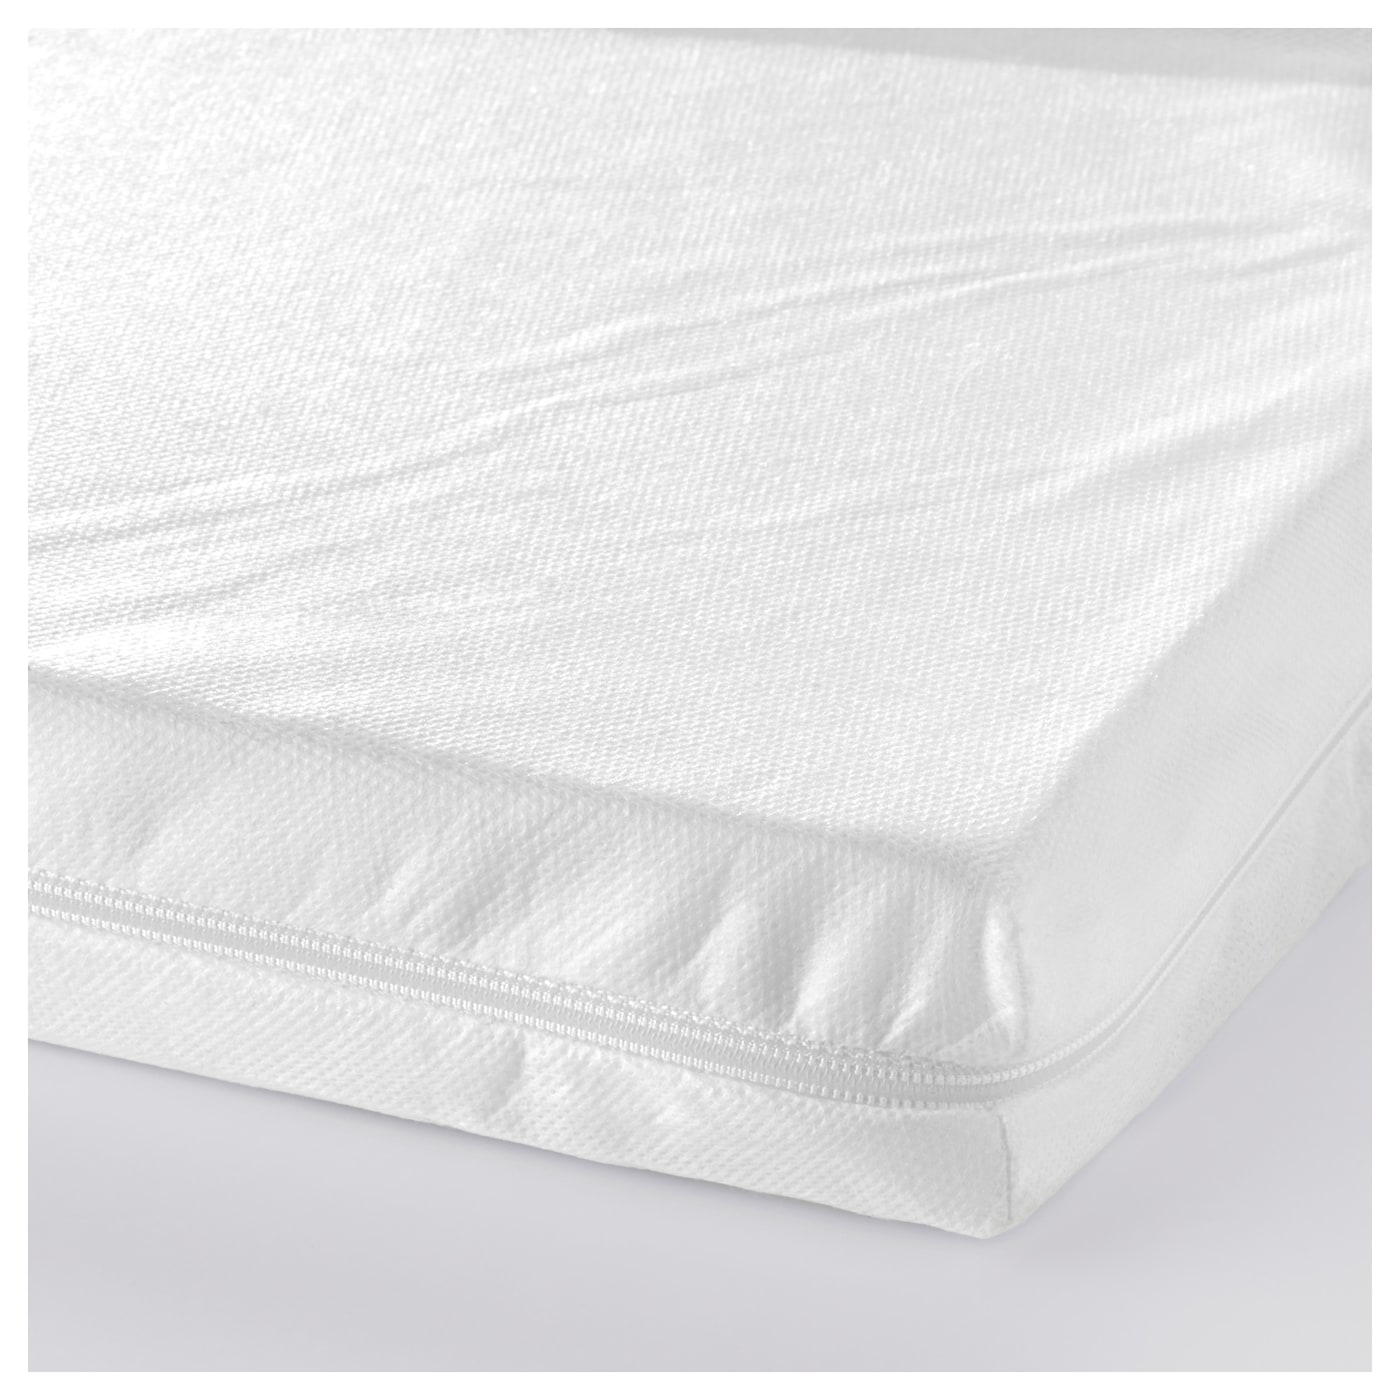 Ikea Udden Herd Anschließen ~ VYSSA SLAPPNA Mattress for extendable bed White 80×200 cm  IKEA